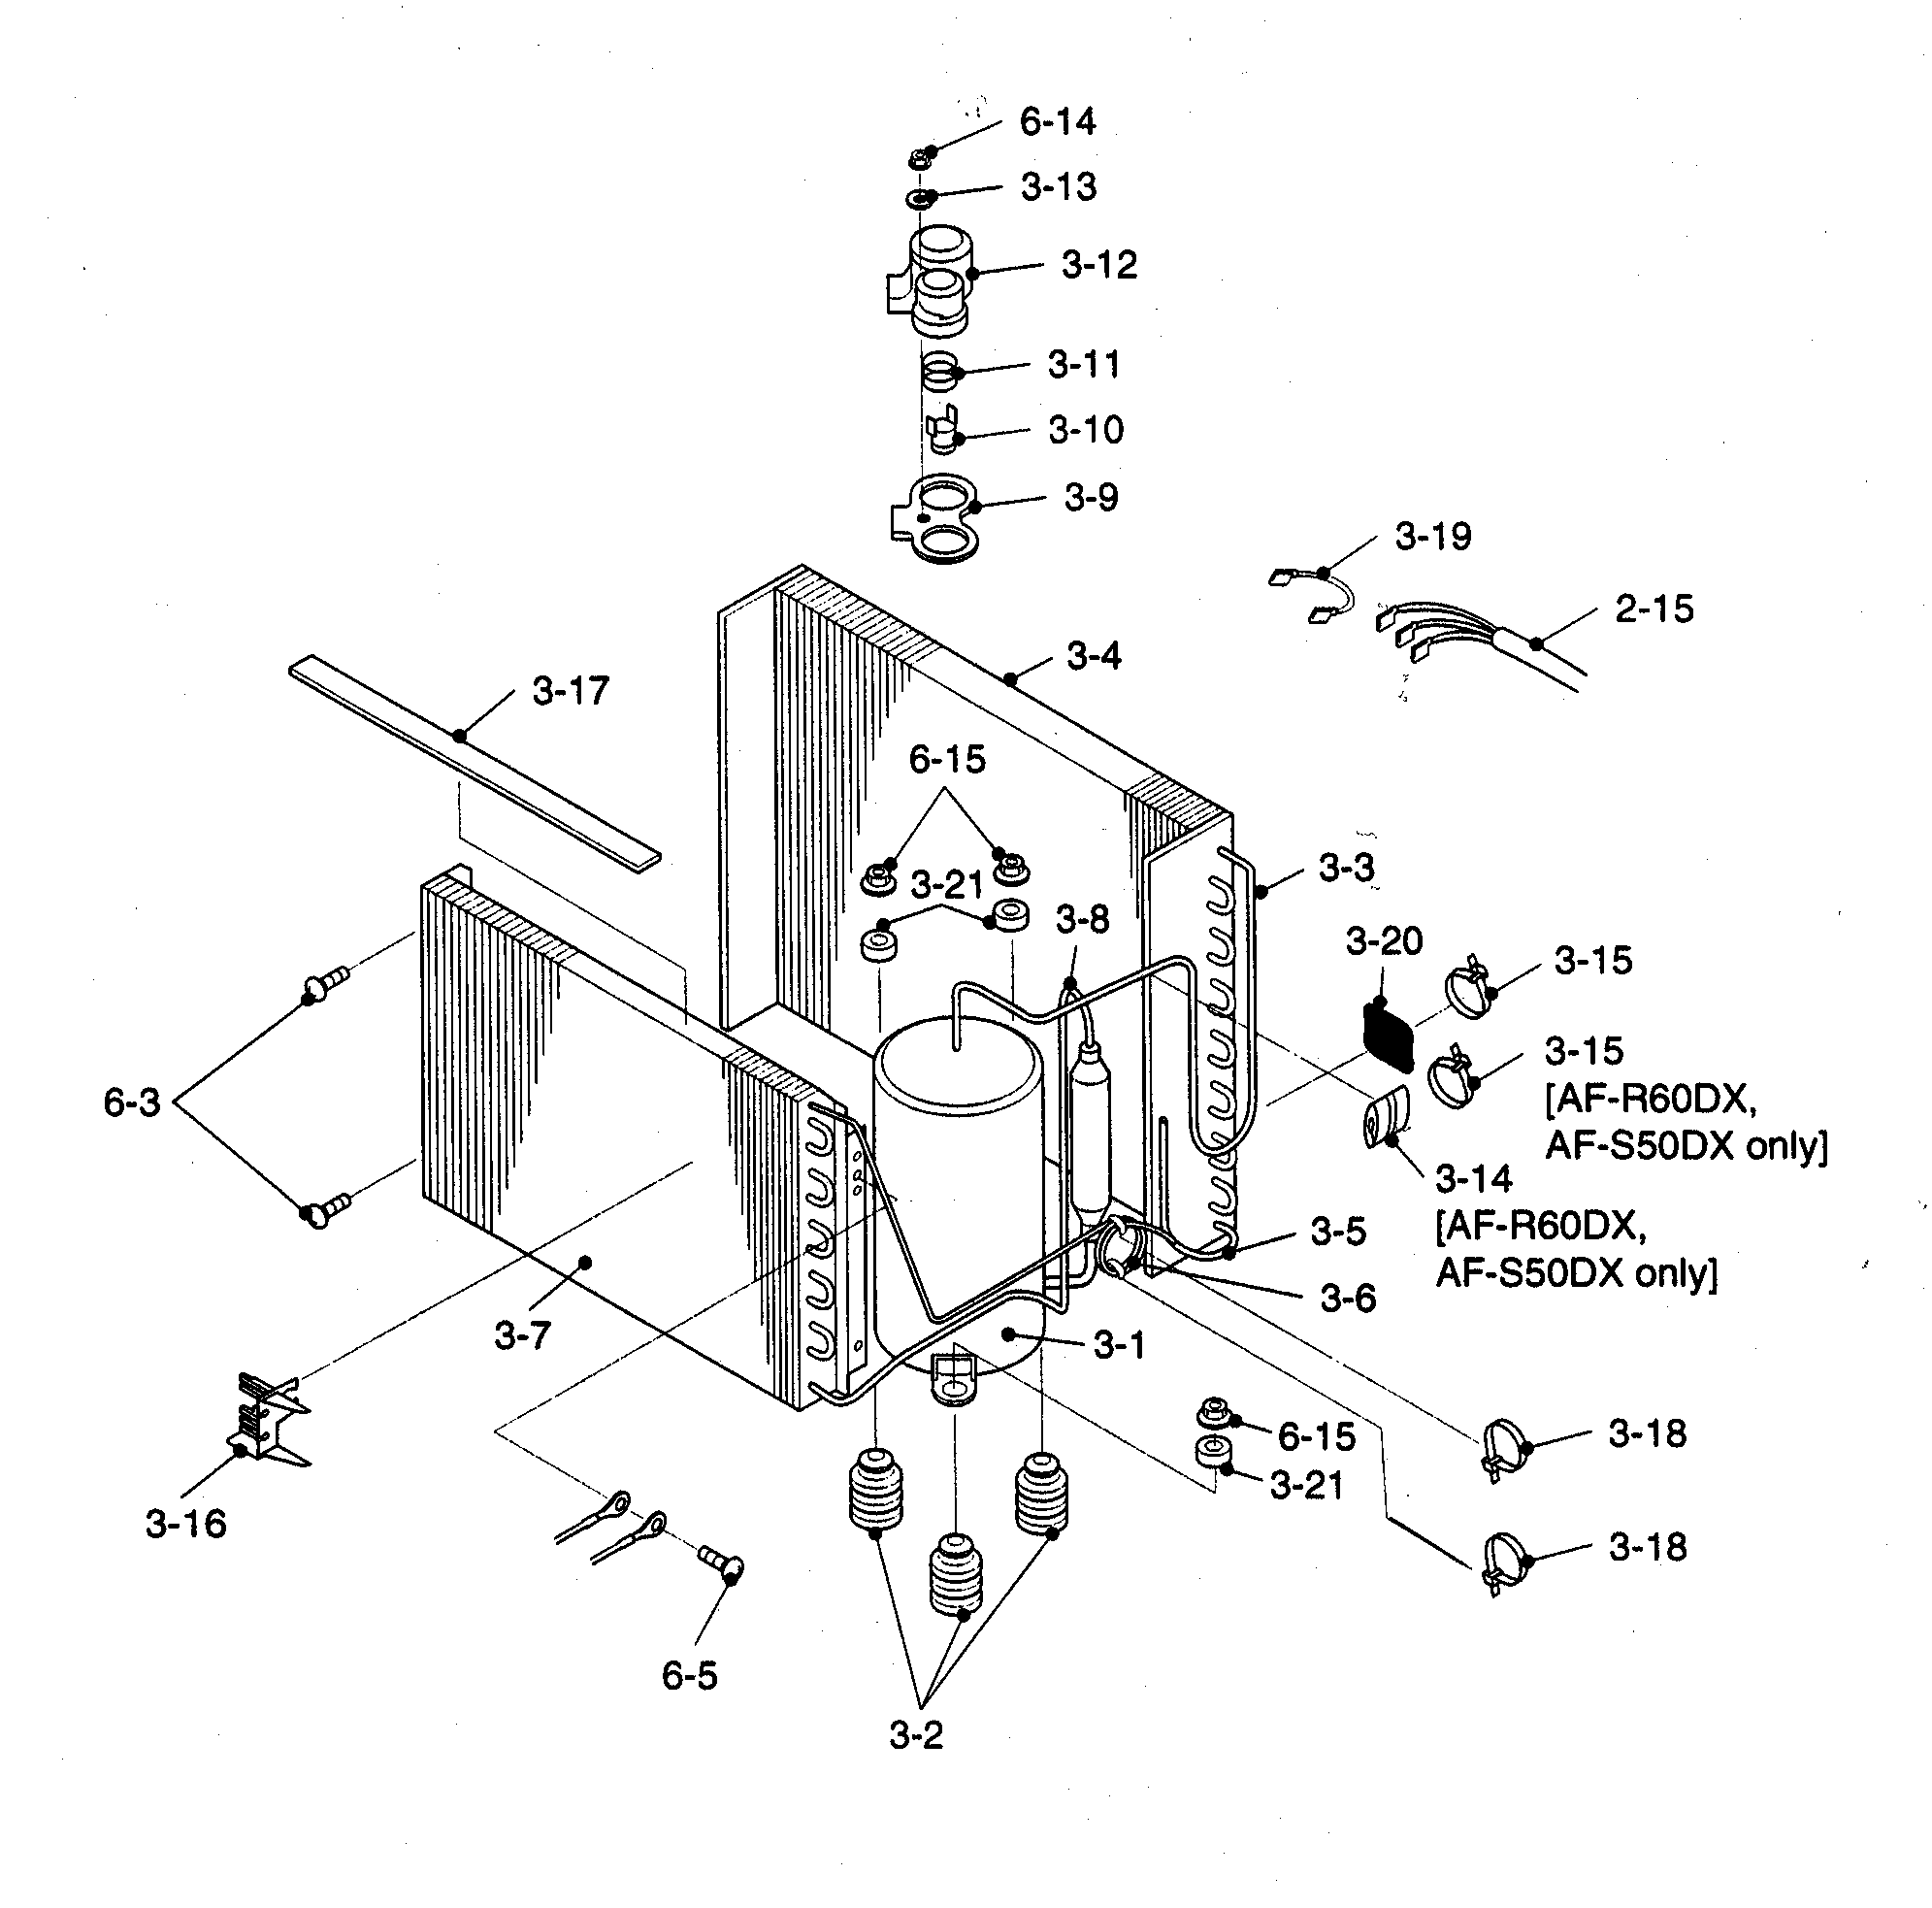 hight resolution of sharp af s60dx cycle parts diagram